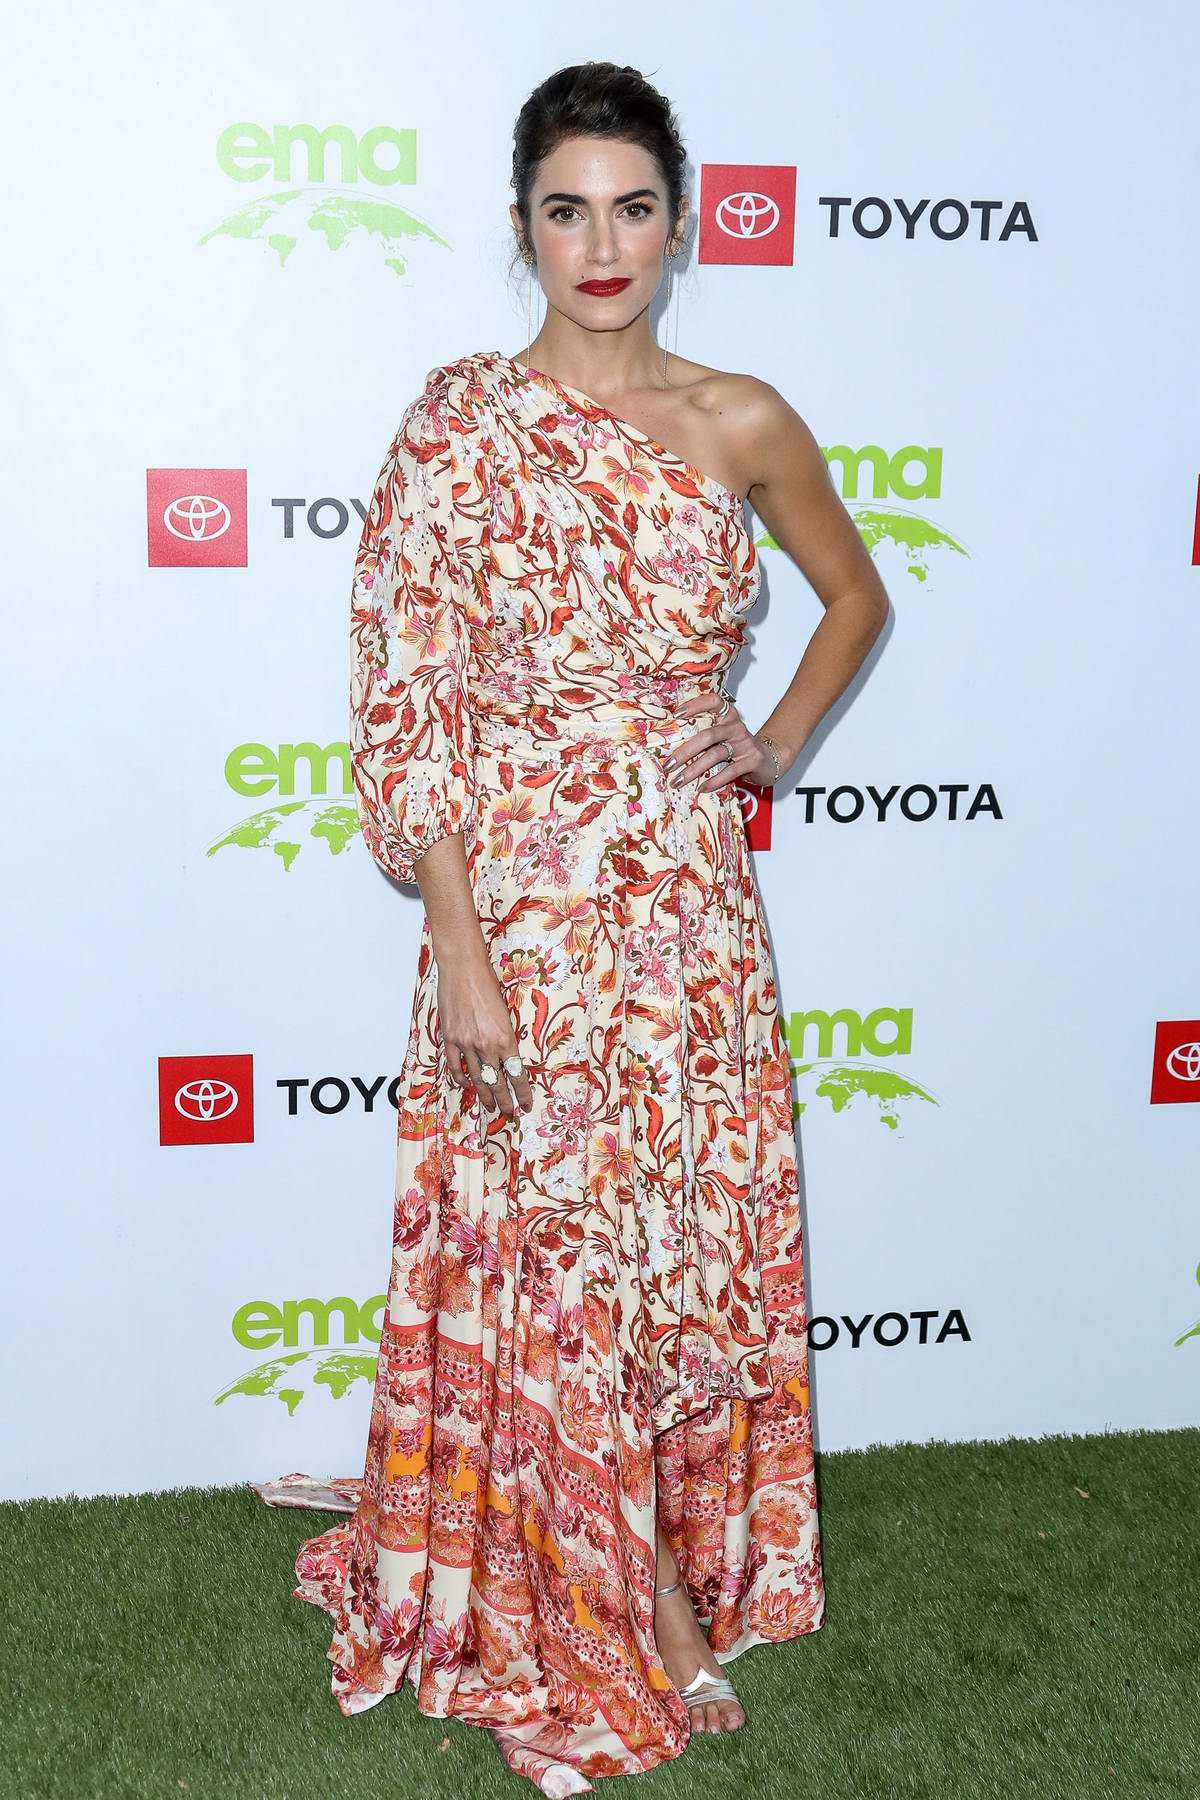 Nikki Reed attends the 2nd Annnual Environmental Media Association Honors Benefit Gala in Los Angeles